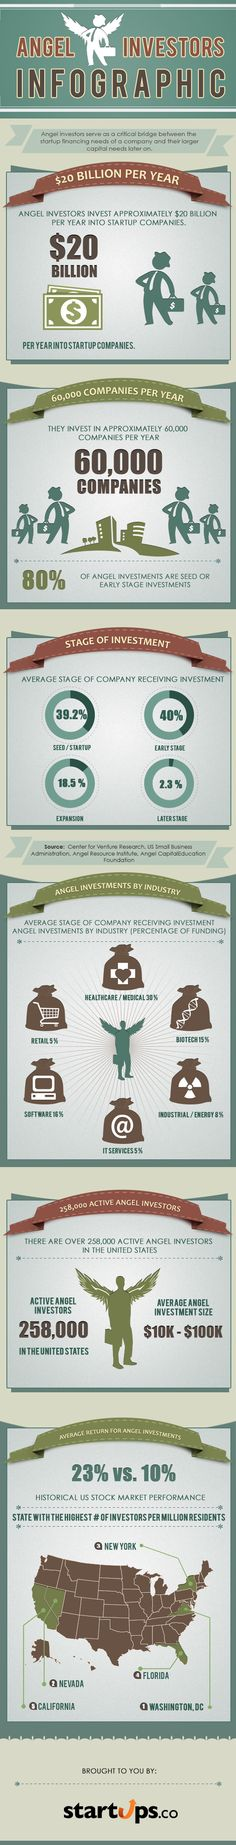 The State of Angel Investment [Infographic] - AlleyWatch